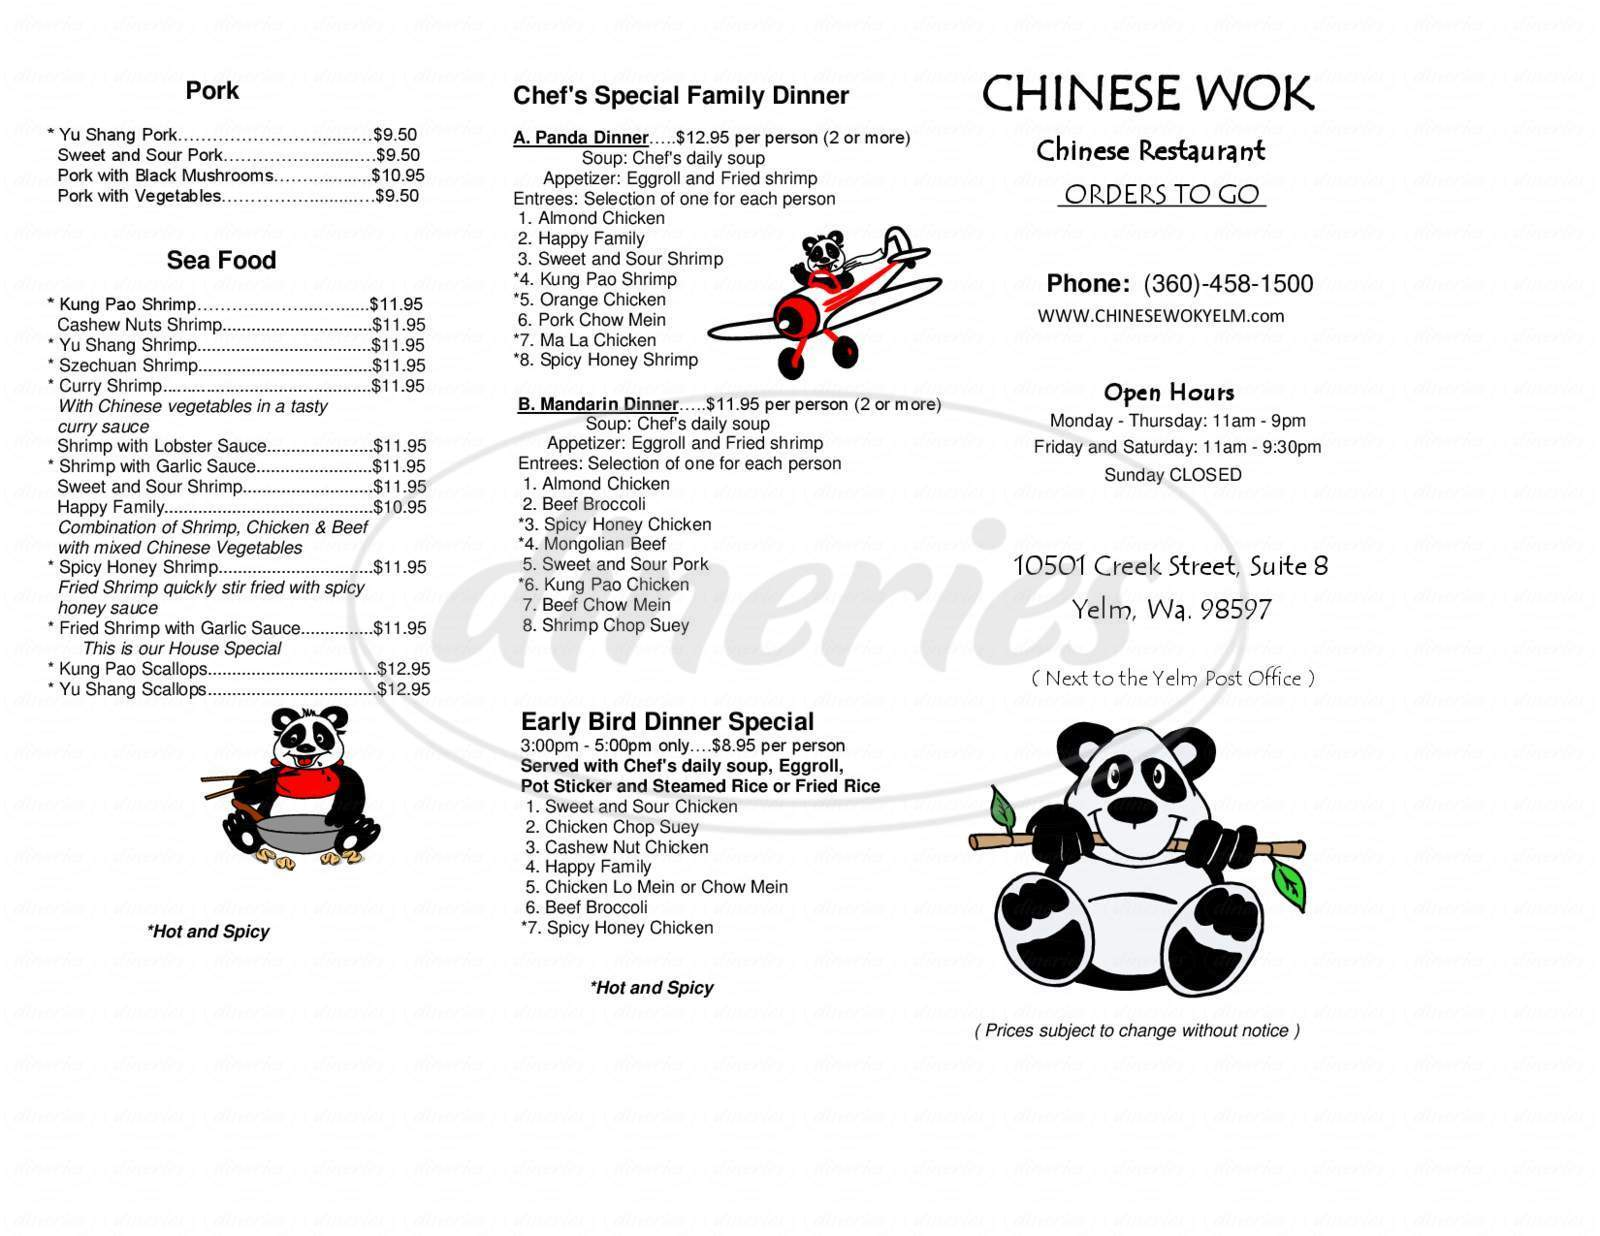 menu for Chinese Wok